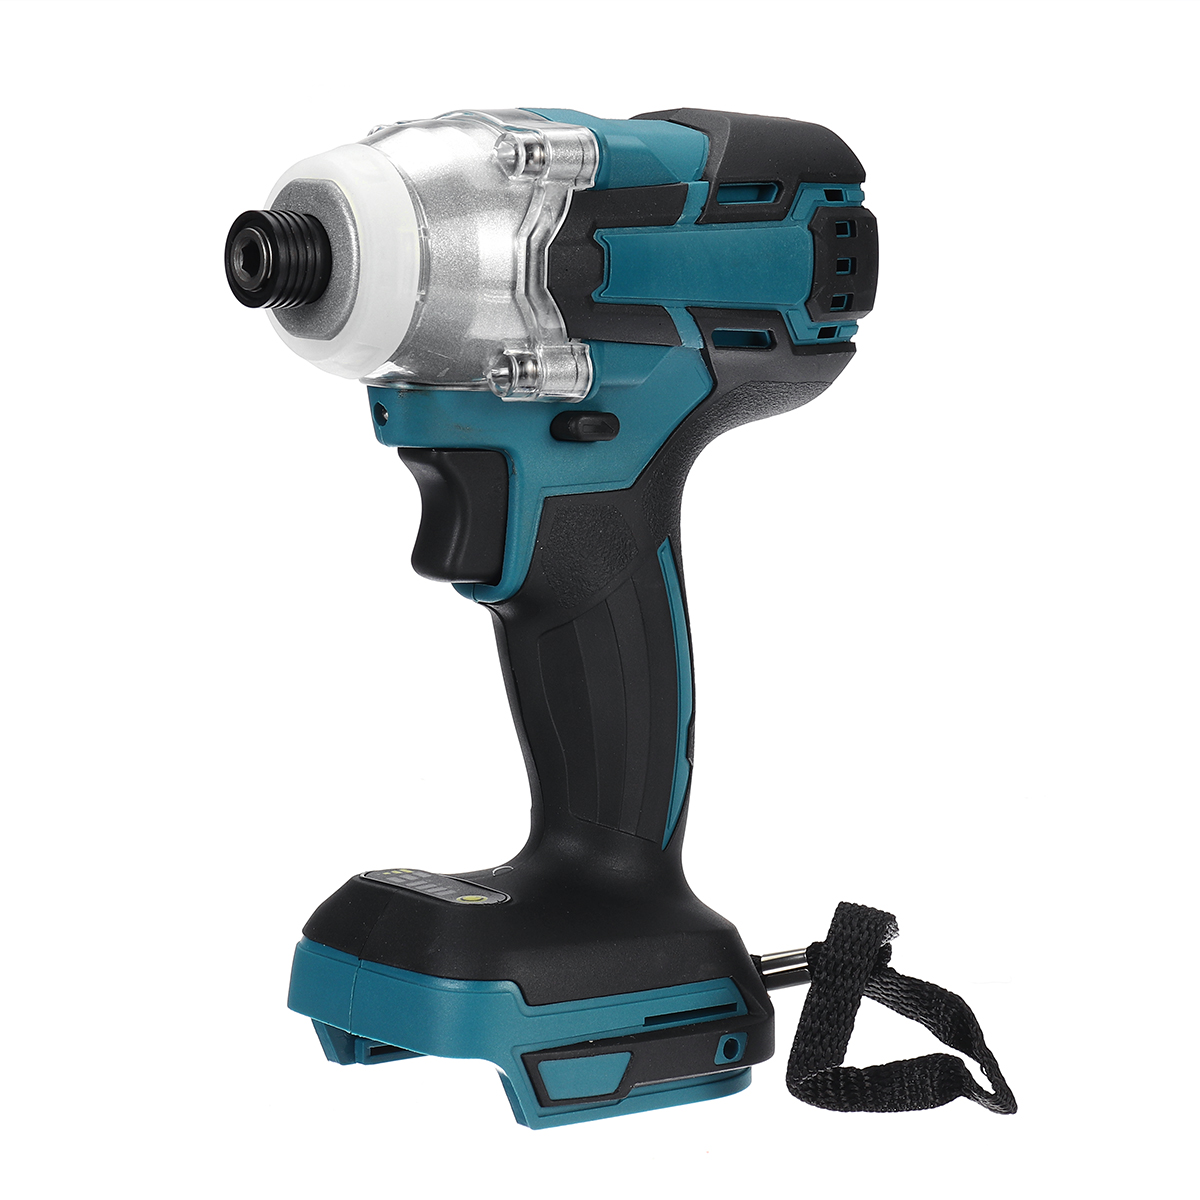 18V 520 N.m Cordless Electric Screwdriver Speed Brushless Impact Wrench Rechargable Drill Driver+ LED Light For Makita Battery|Electric Wrenches|   - AliExpress